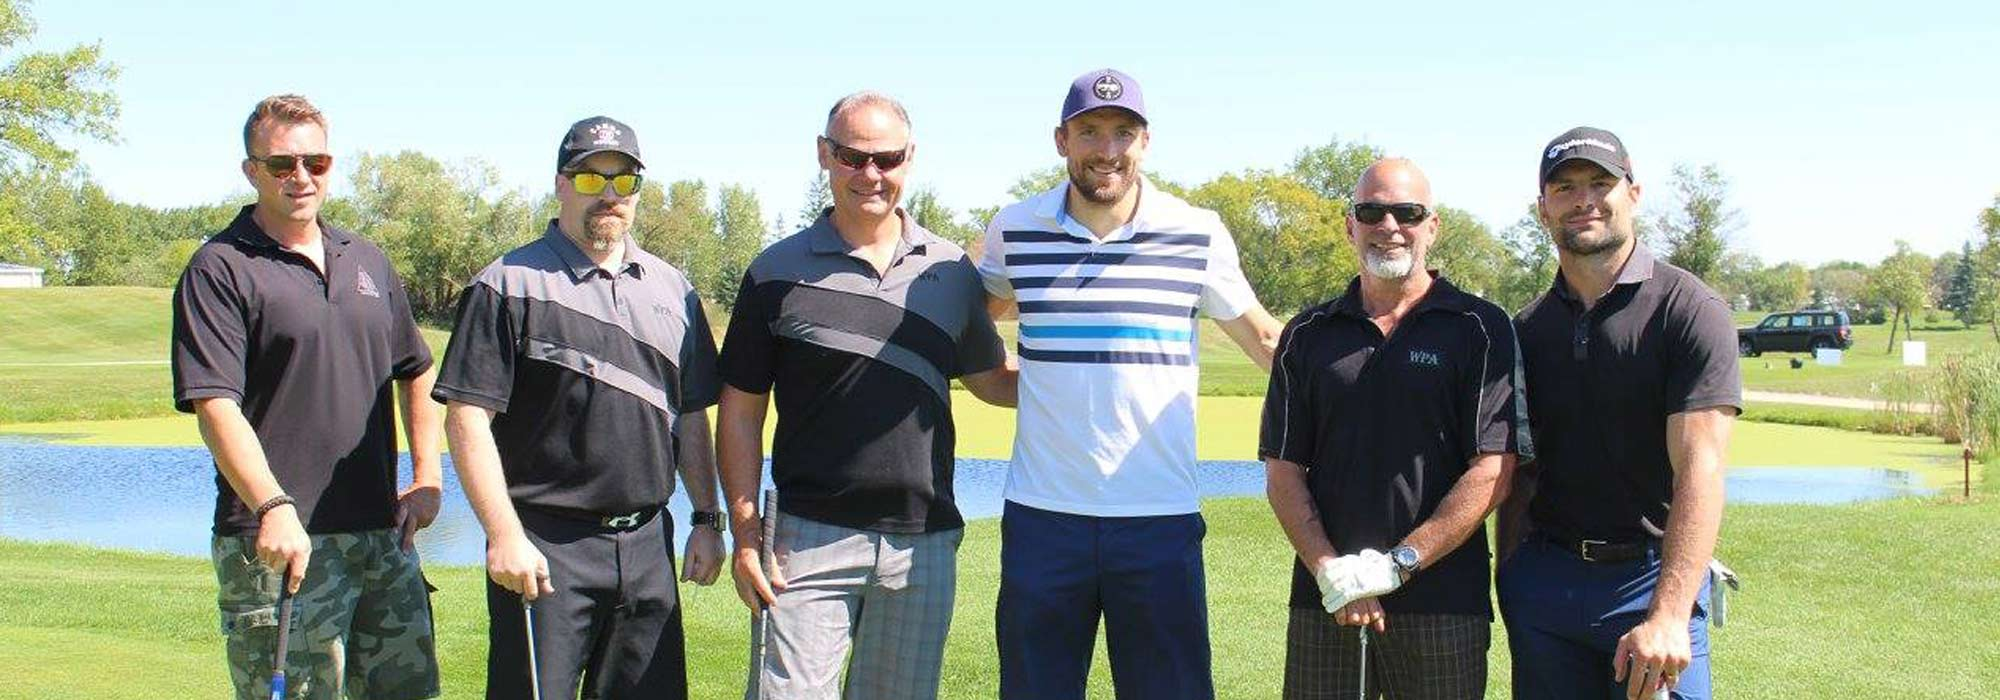 Stars 'FORE' Special O Golf Tournament - Wednesday, August 29, 2018